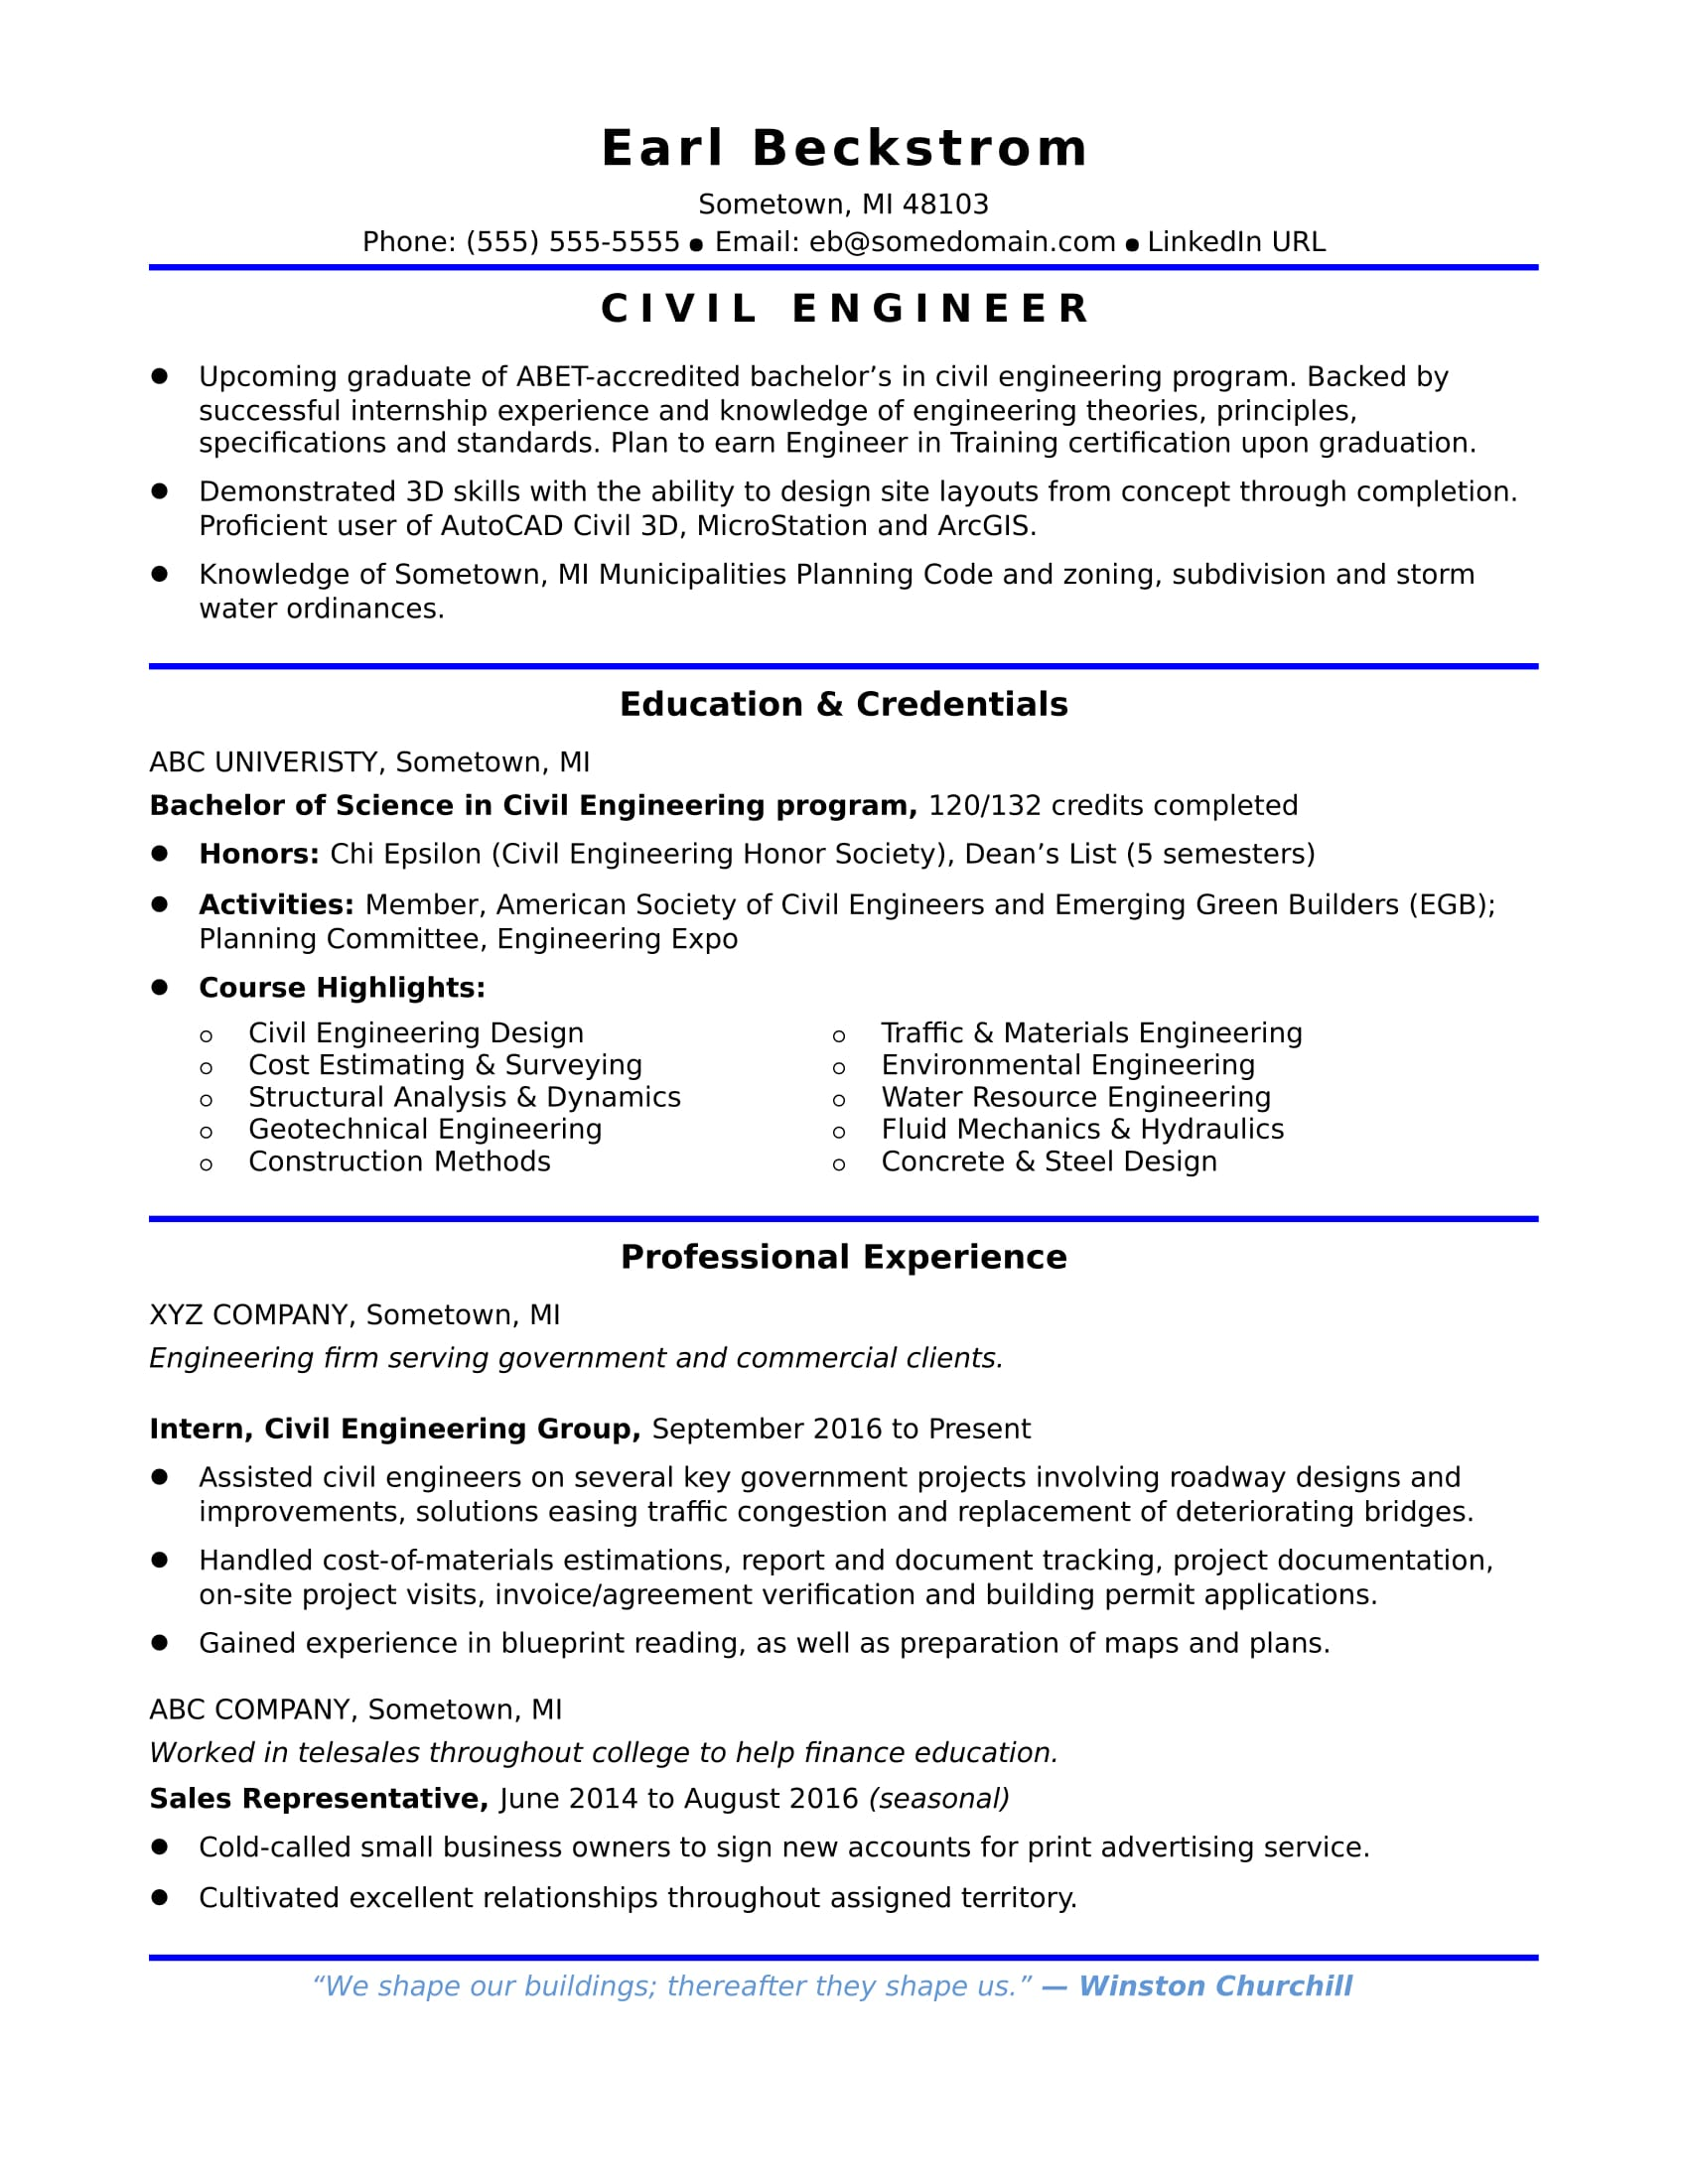 Exceptional Sample Resume For An Entry Level Civil Engineer Idea Resume For